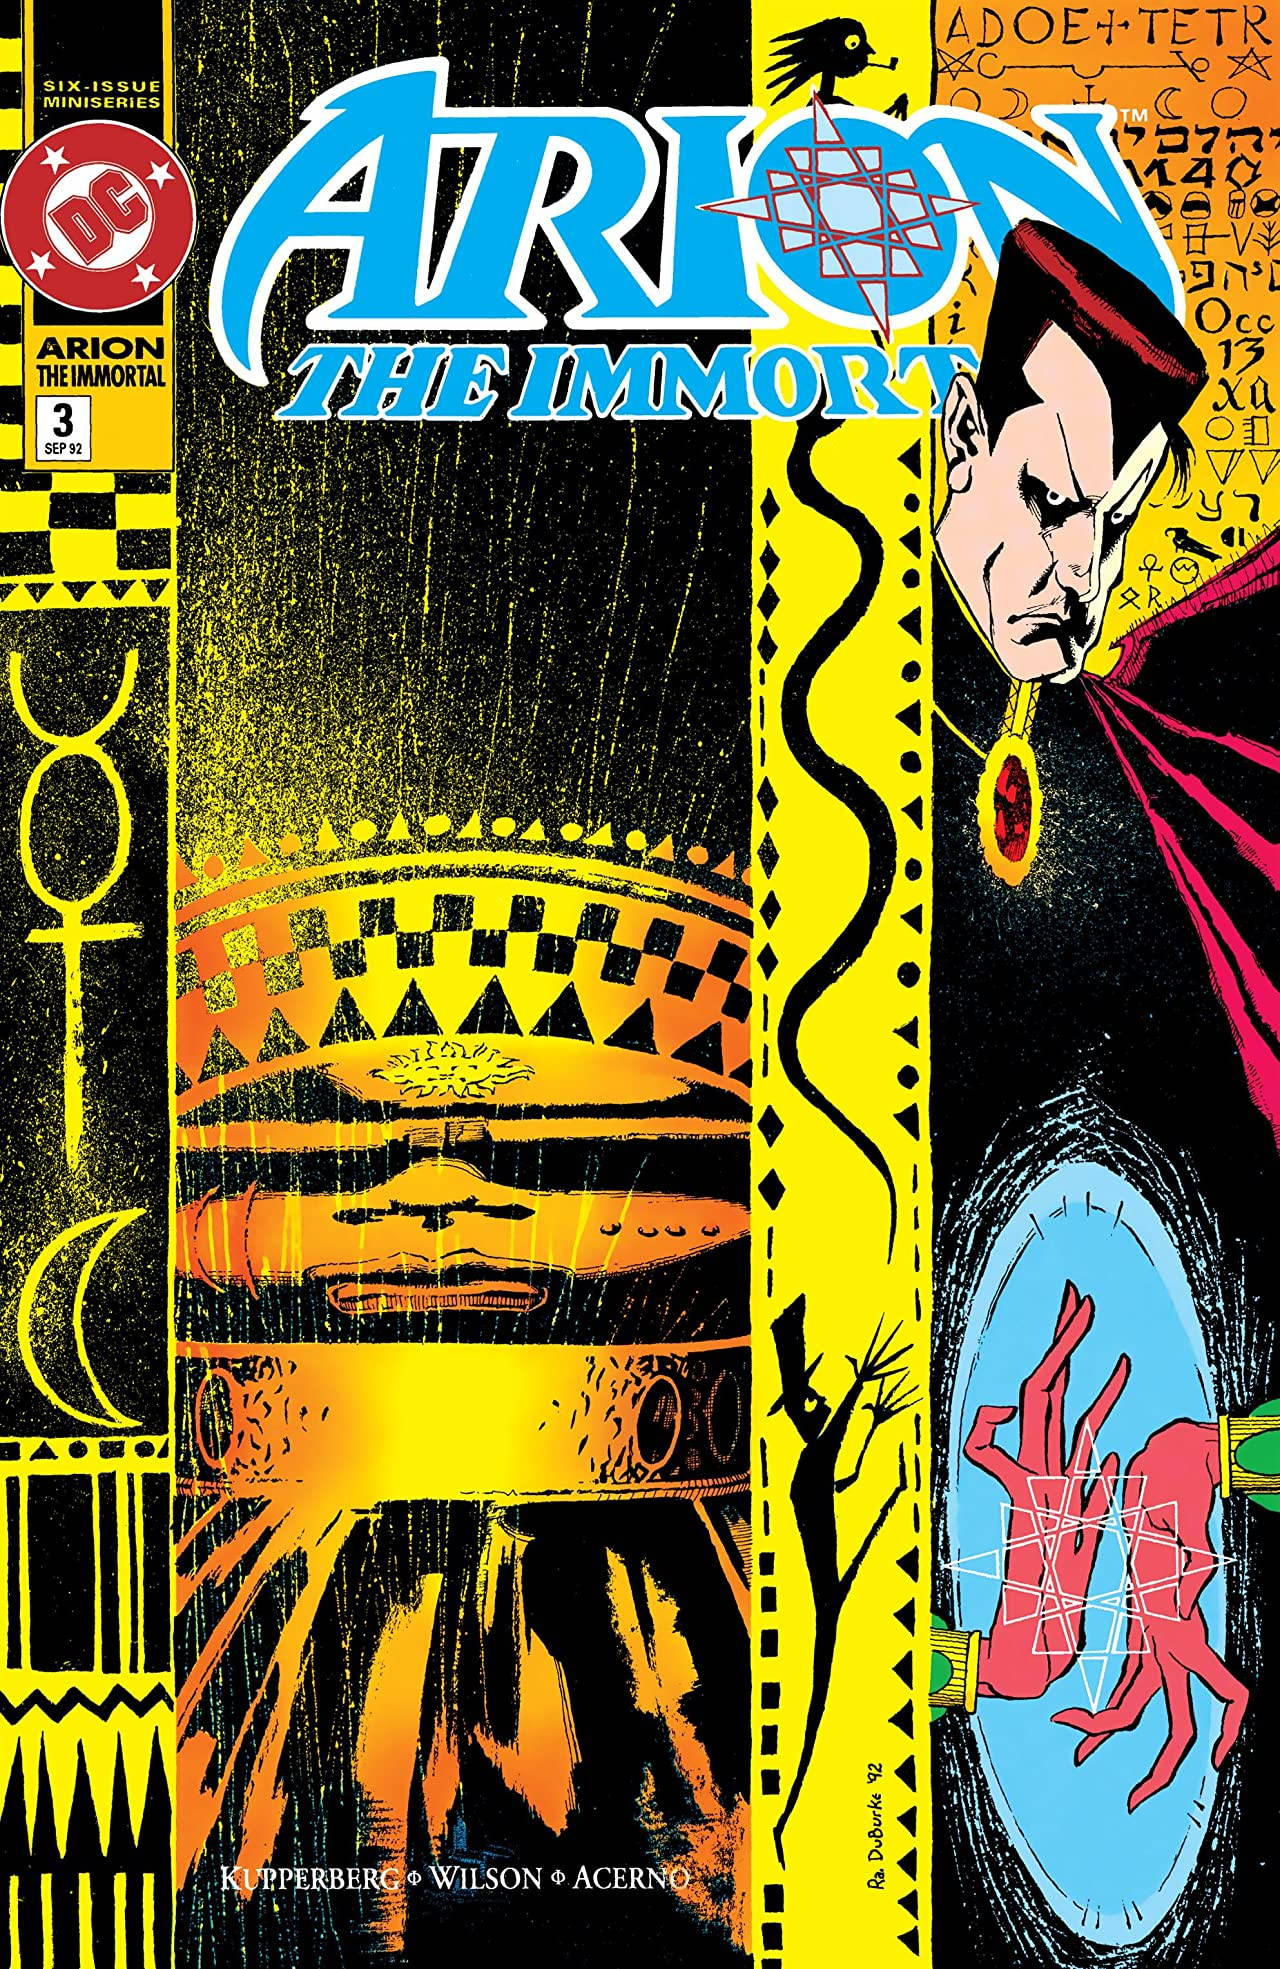 Arion the Immortal (1992) #3